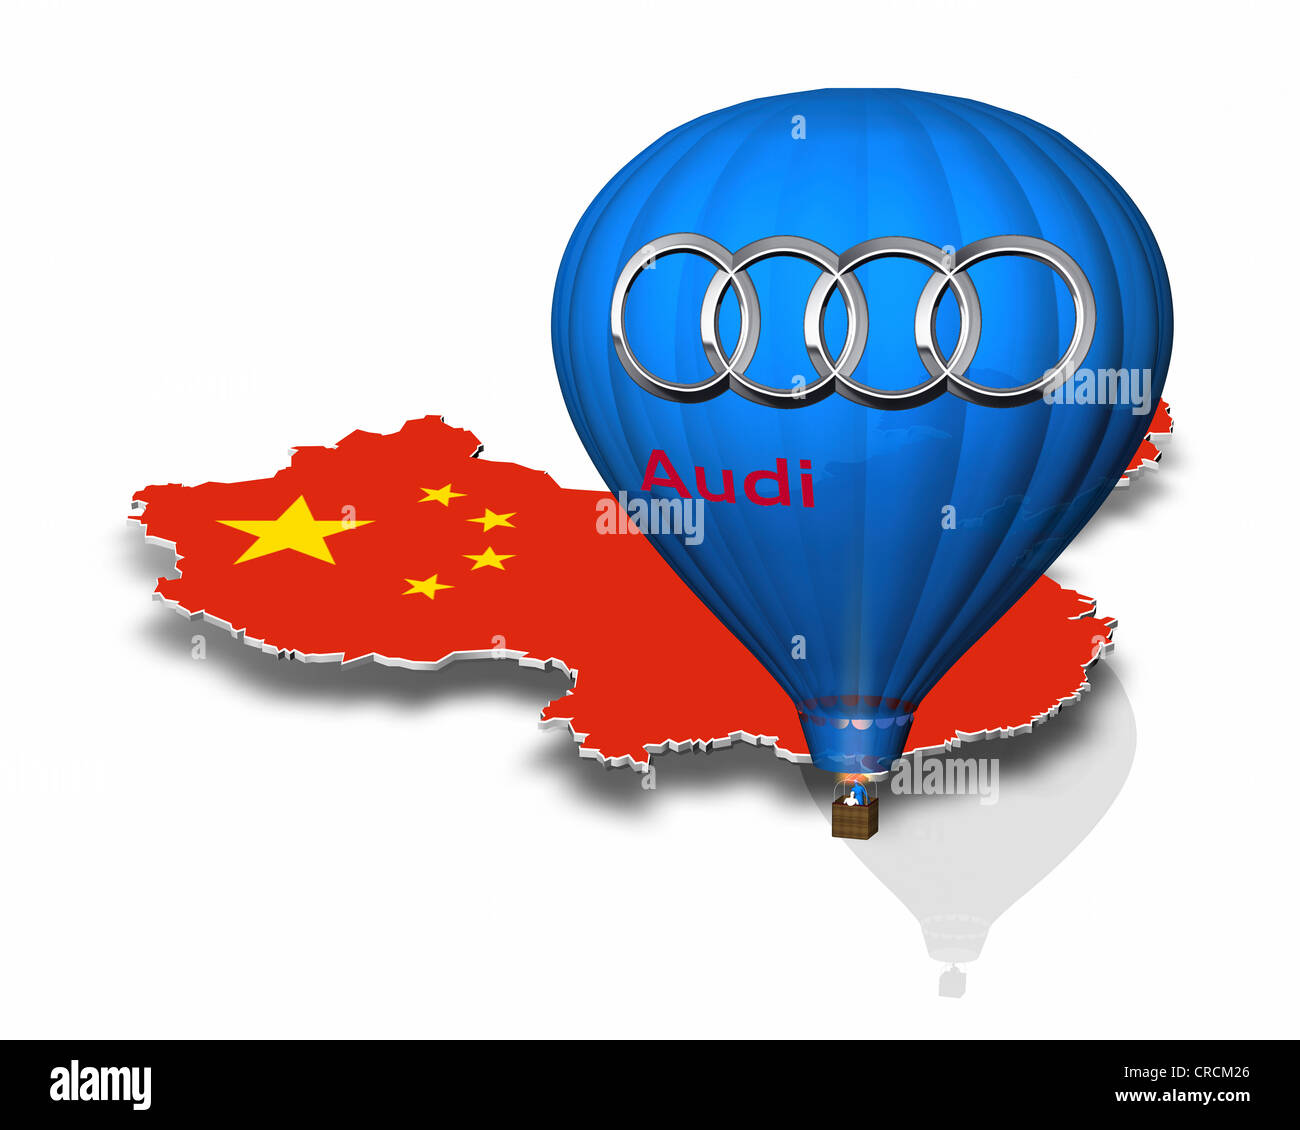 Outline of China, hot-air balloon, Audi logo - Stock Image